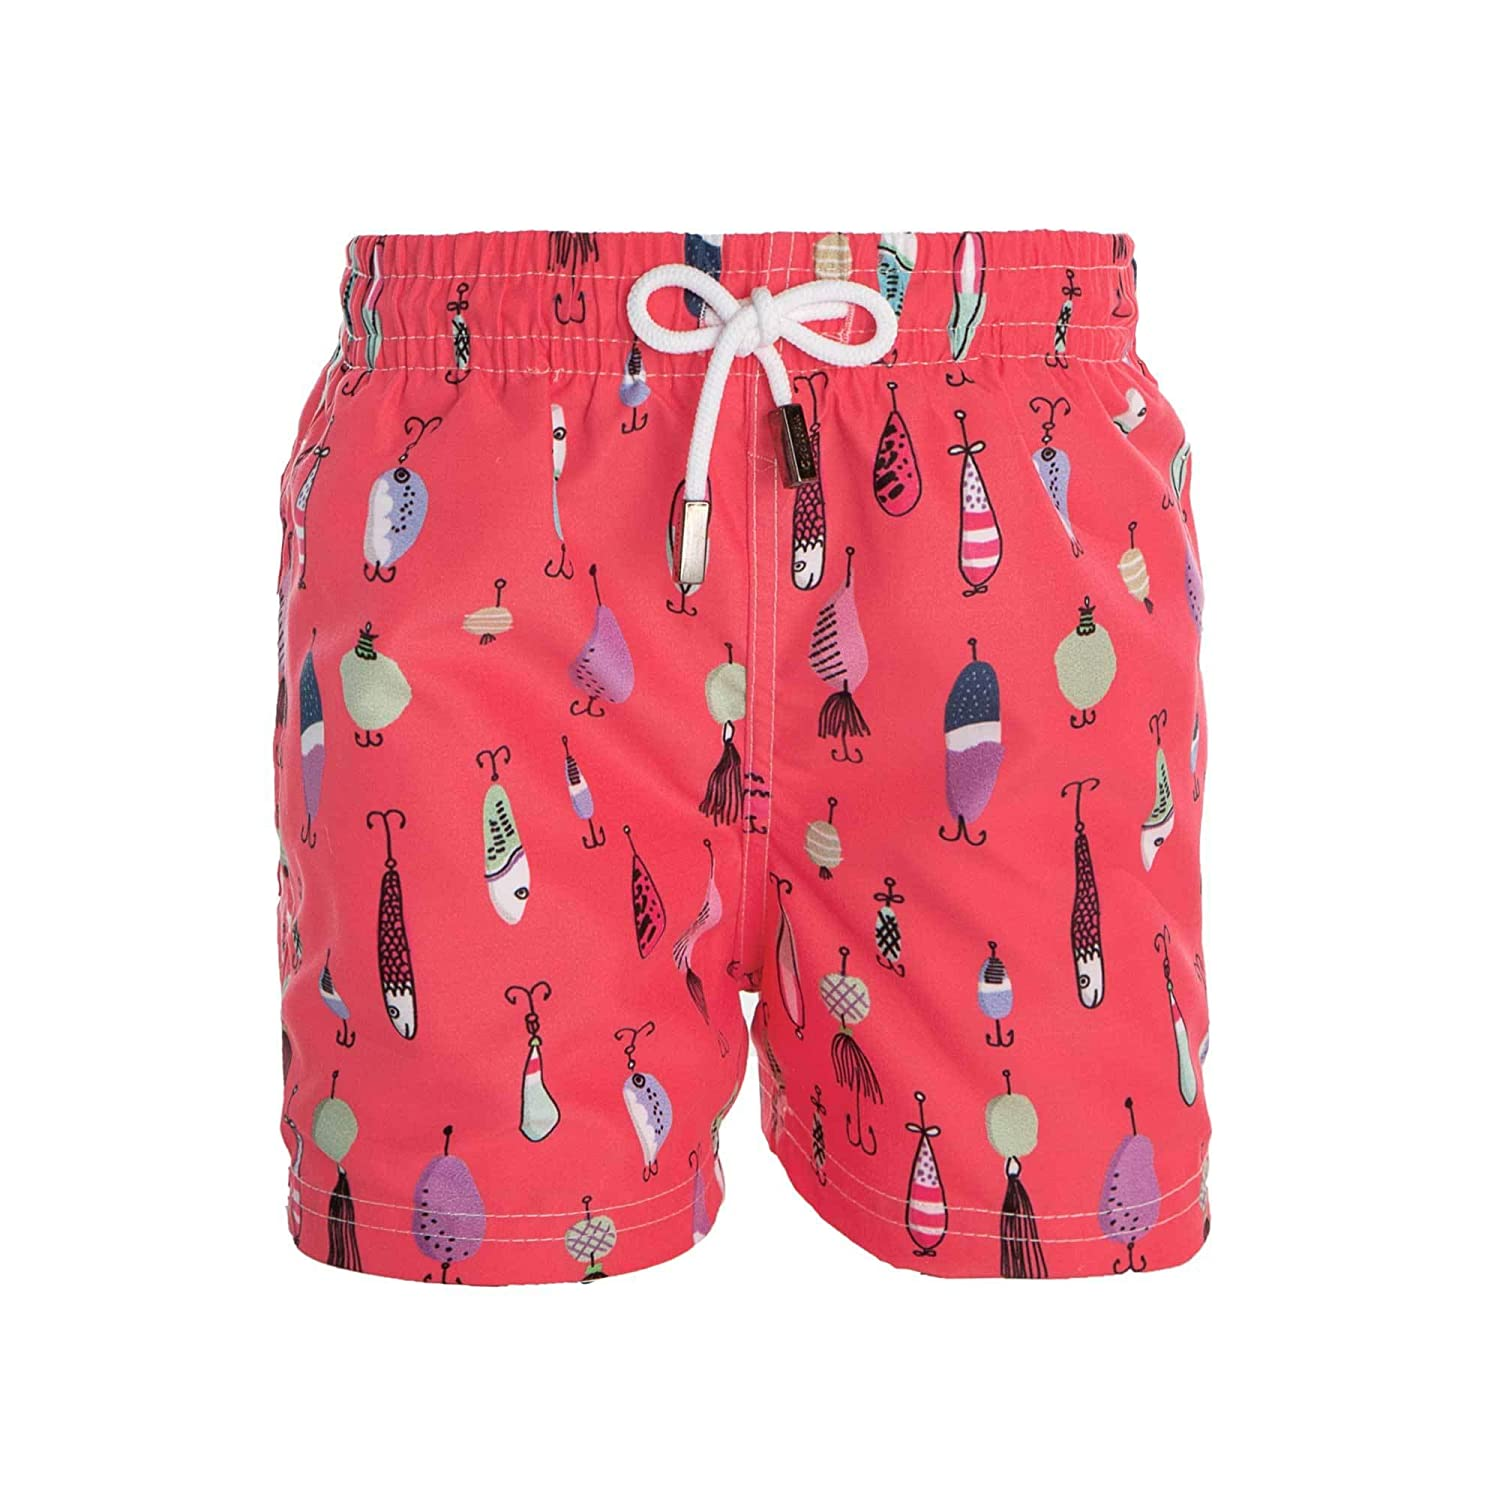 New Print Collection Kids Boys Premium Swimsuit Quick Dry Beach Trunks 98 Coast Av